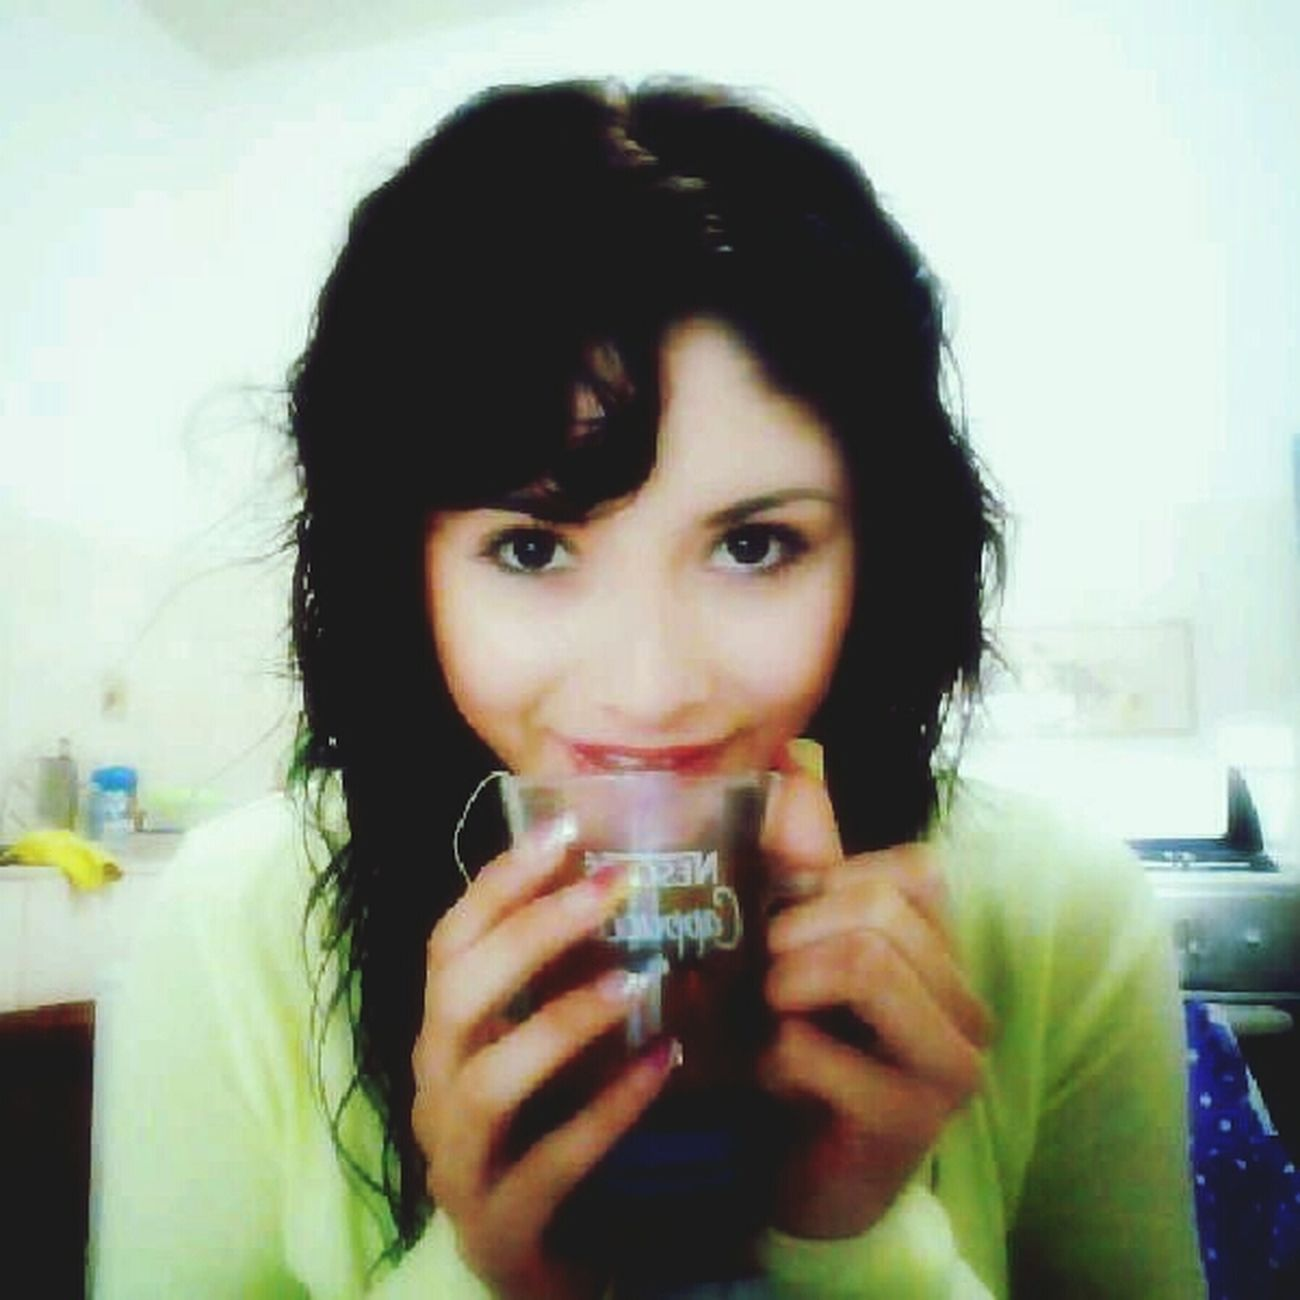 GoodMorning.!  It's Tea Time... Have A Nice Day♥